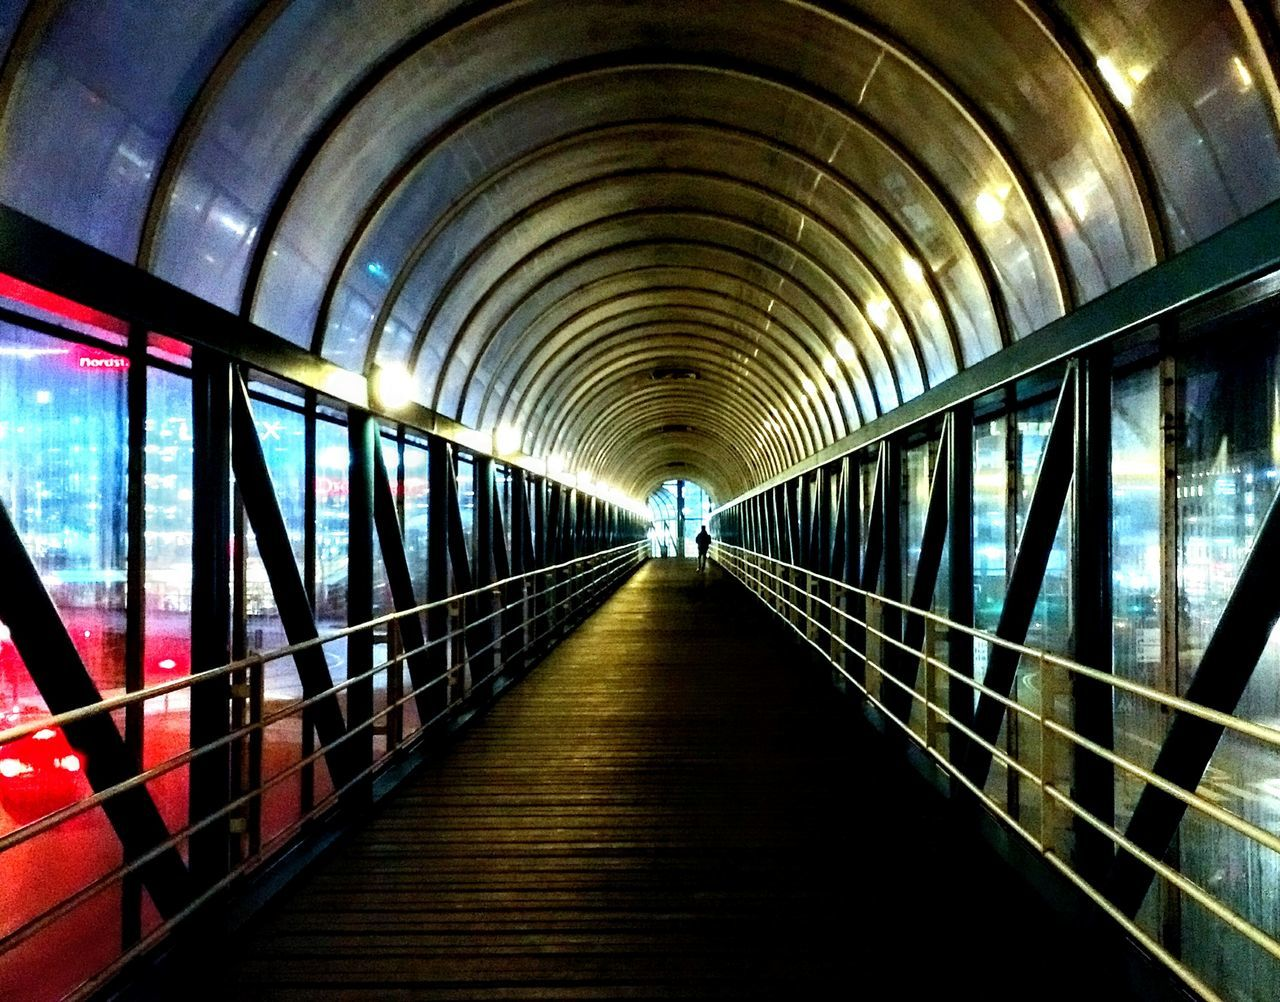 the way forward, diminishing perspective, illuminated, transportation, indoors, architecture, arch, tunnel, built structure, day, no people